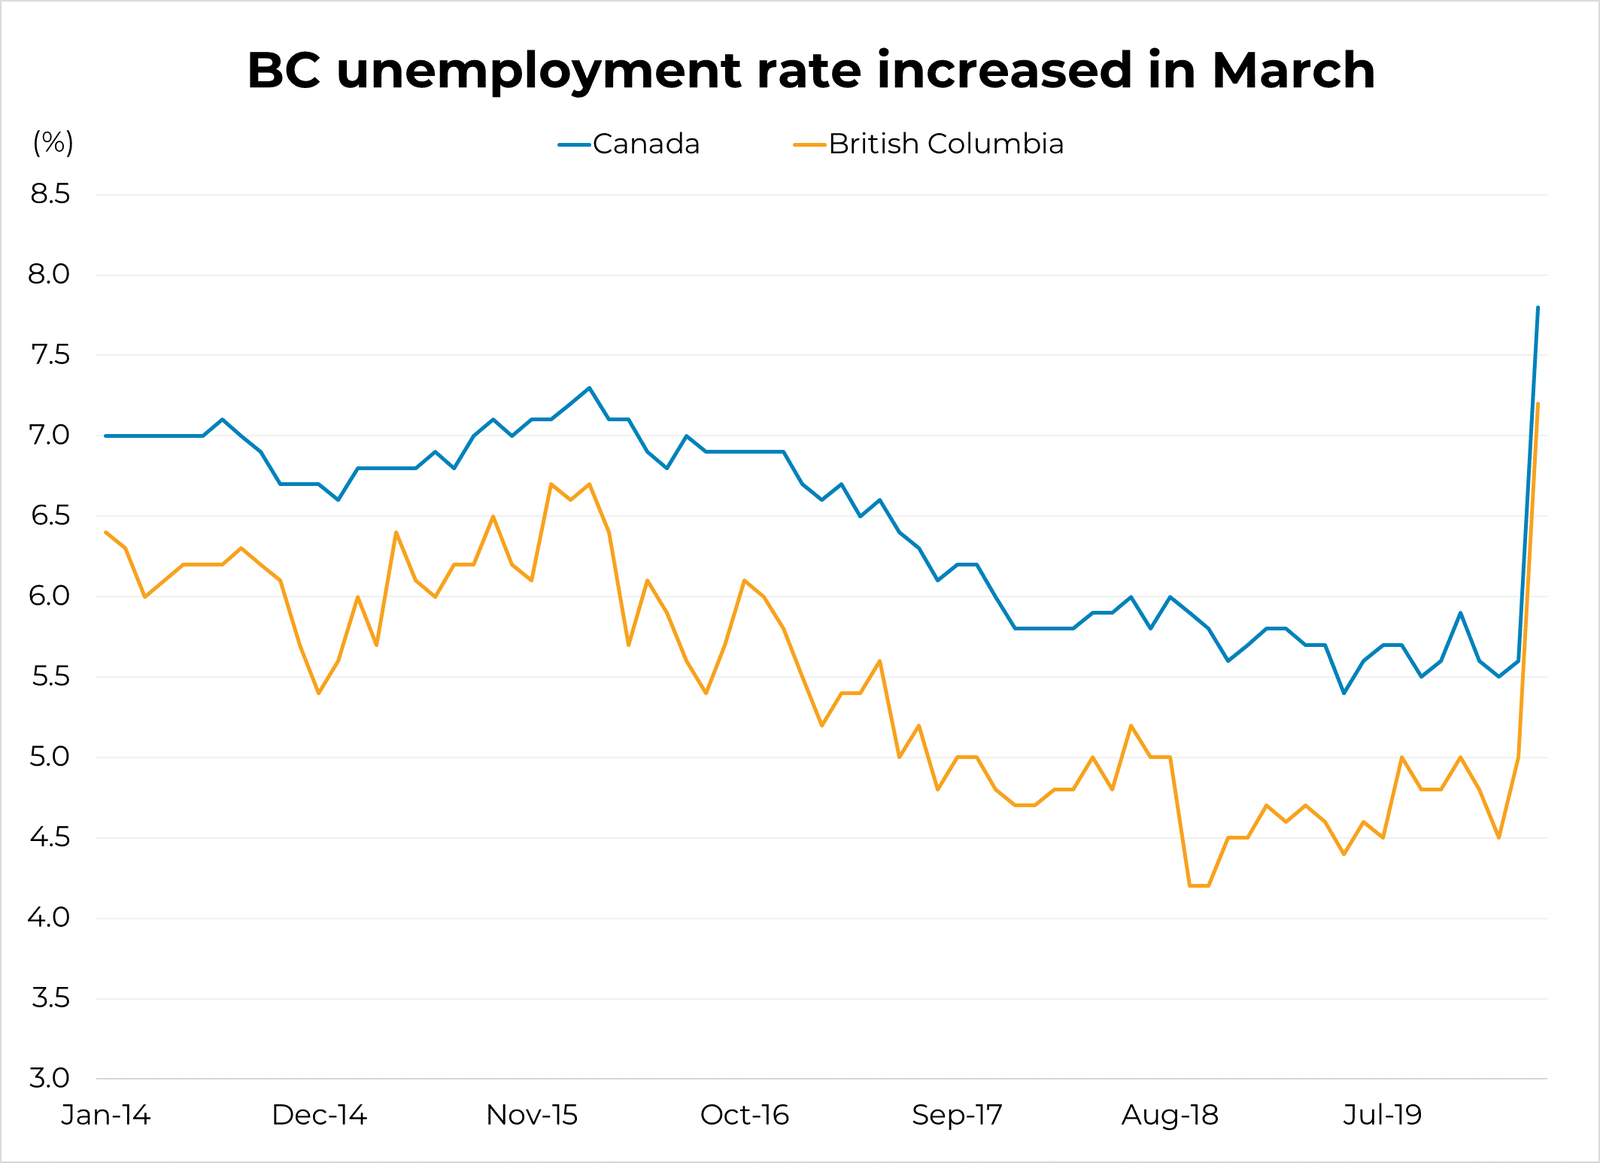 BC unemployment numbers for March 2020